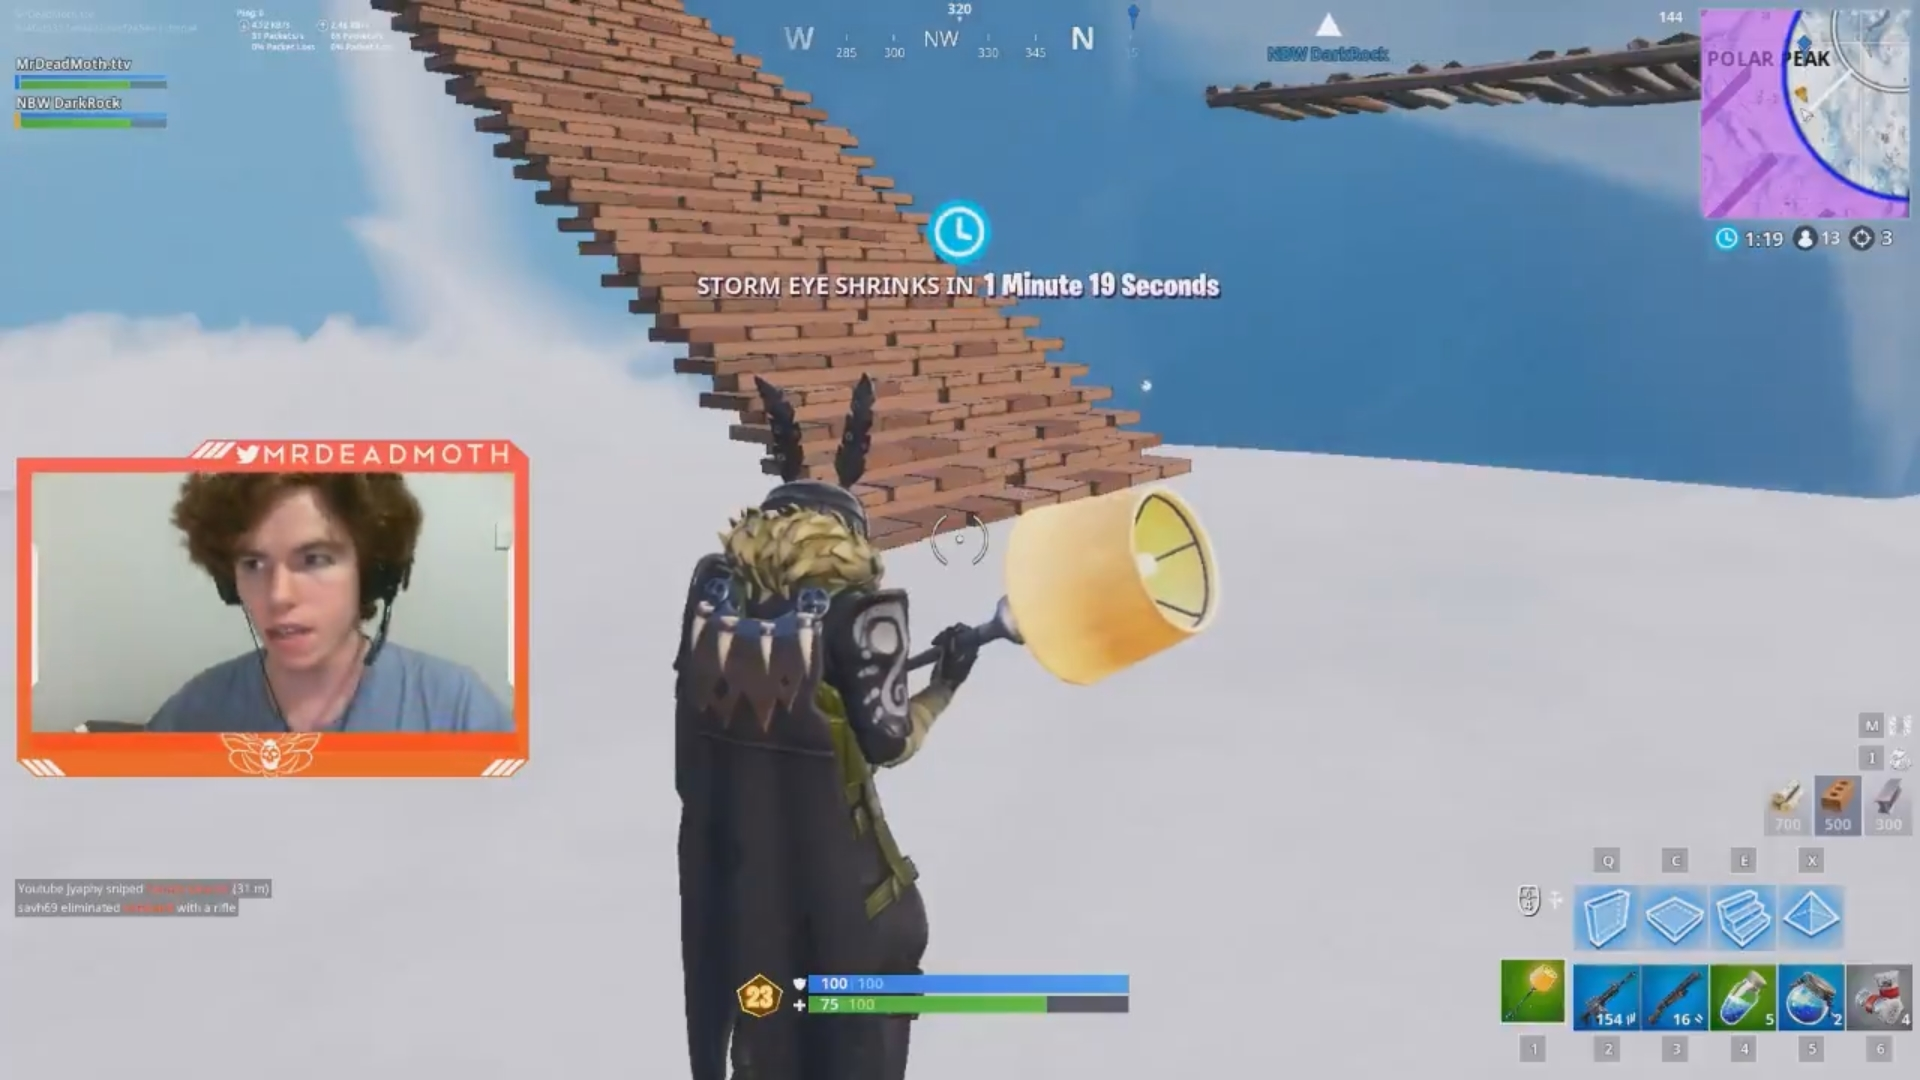 Fortnite streamer arrested after seemingly hitting wife on Twitch